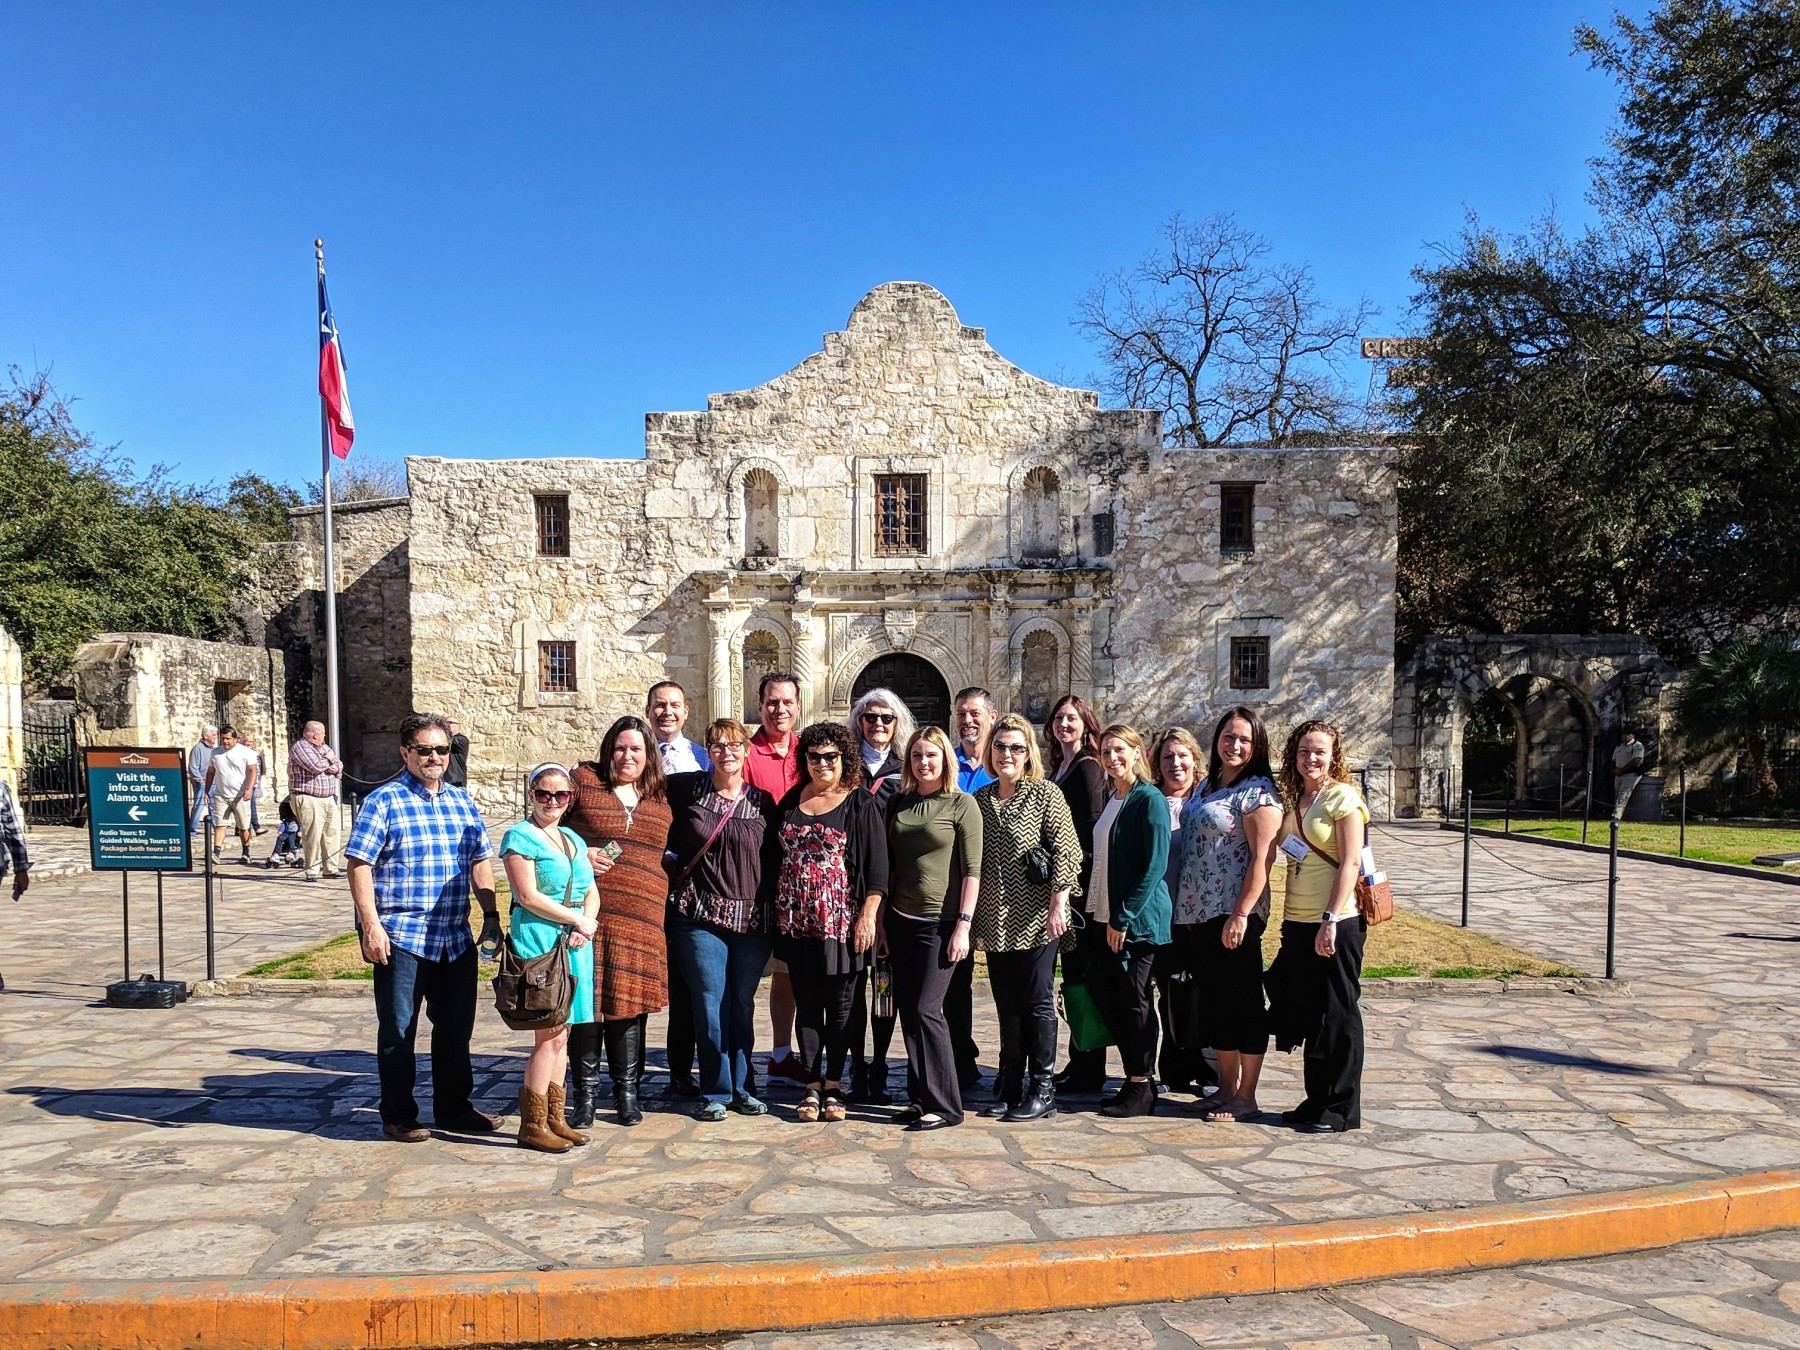 In February of 2018, a delegation of 20 employees from Good Shepherd Health Care System (GSHCS) attend the Health Care Service Excellence Conference in San Antonio, TX – an event in which the organization received 39 awards for significant improvements being made to the patient experience which are reflected by favorable responses in Consumer Assessment of Healthcare Providers and Systems (CAHPS®) survey – a Centers for Medicare & Medicaid Services survey conducted on GSHCS patients.